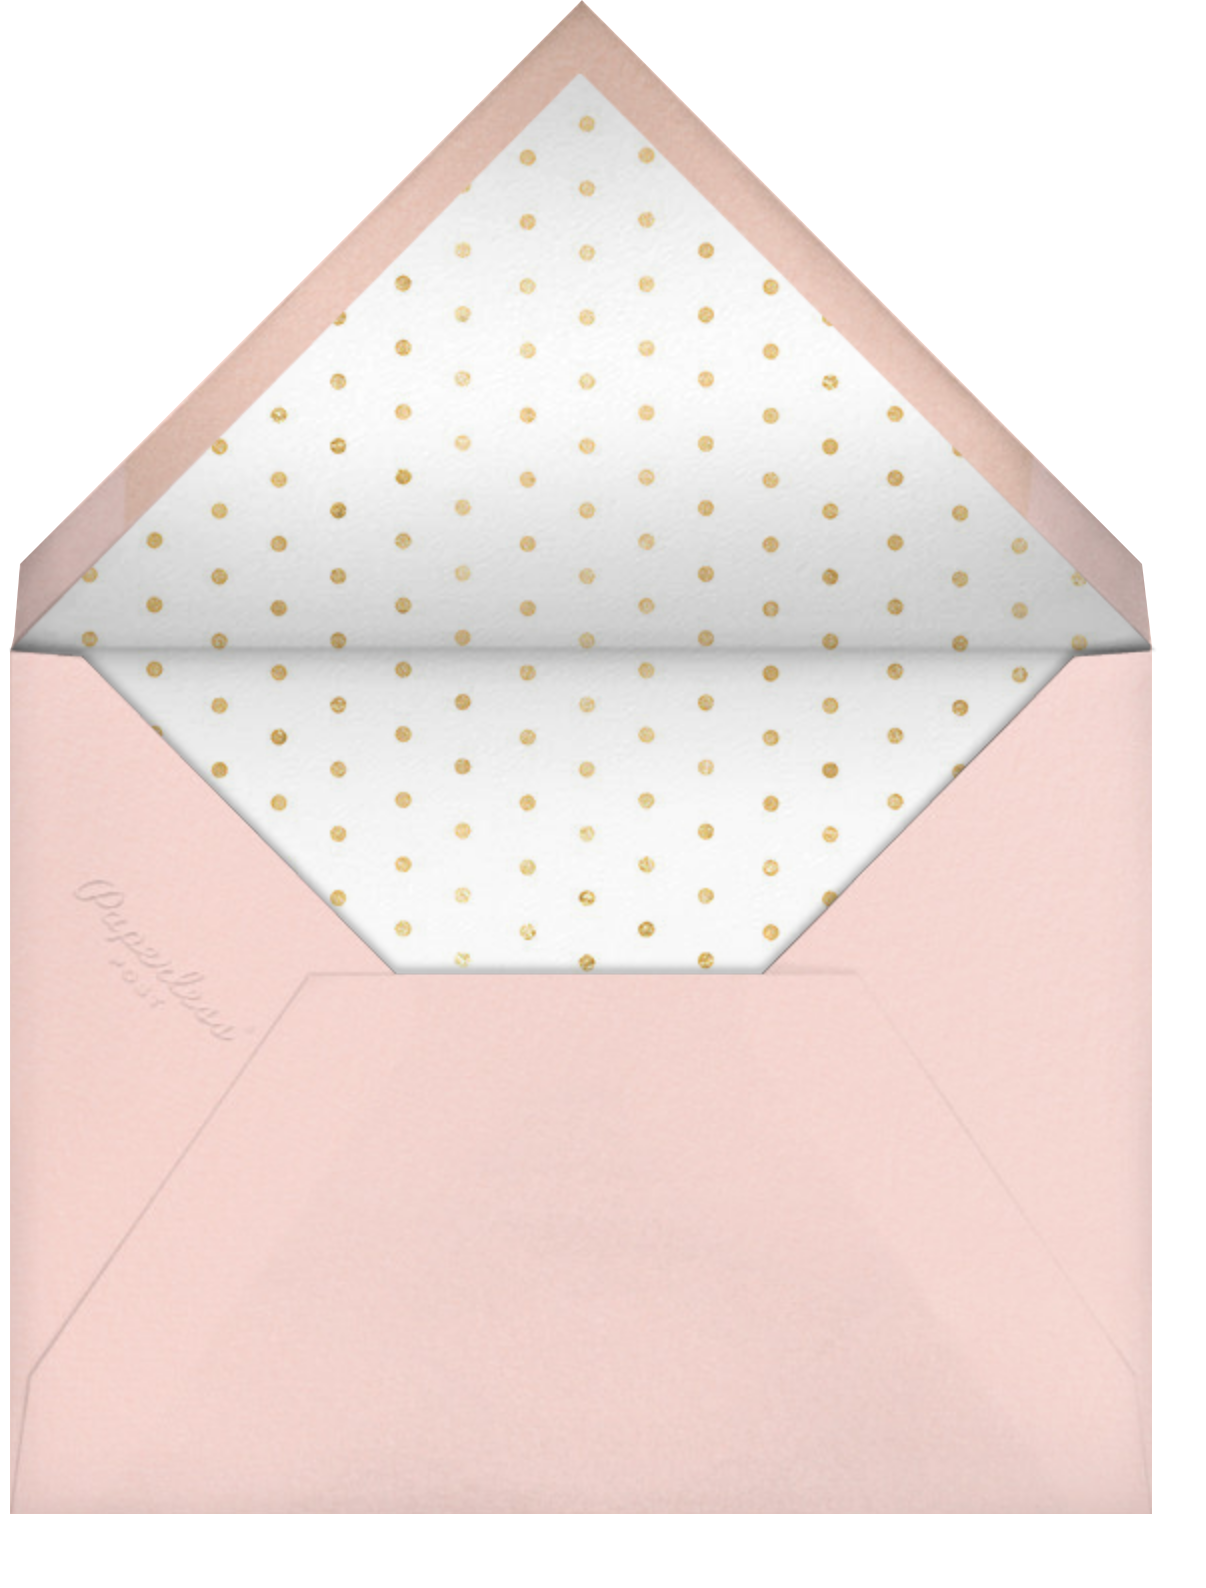 Tossed Cocktails - kate spade new york - Professional events - envelope back